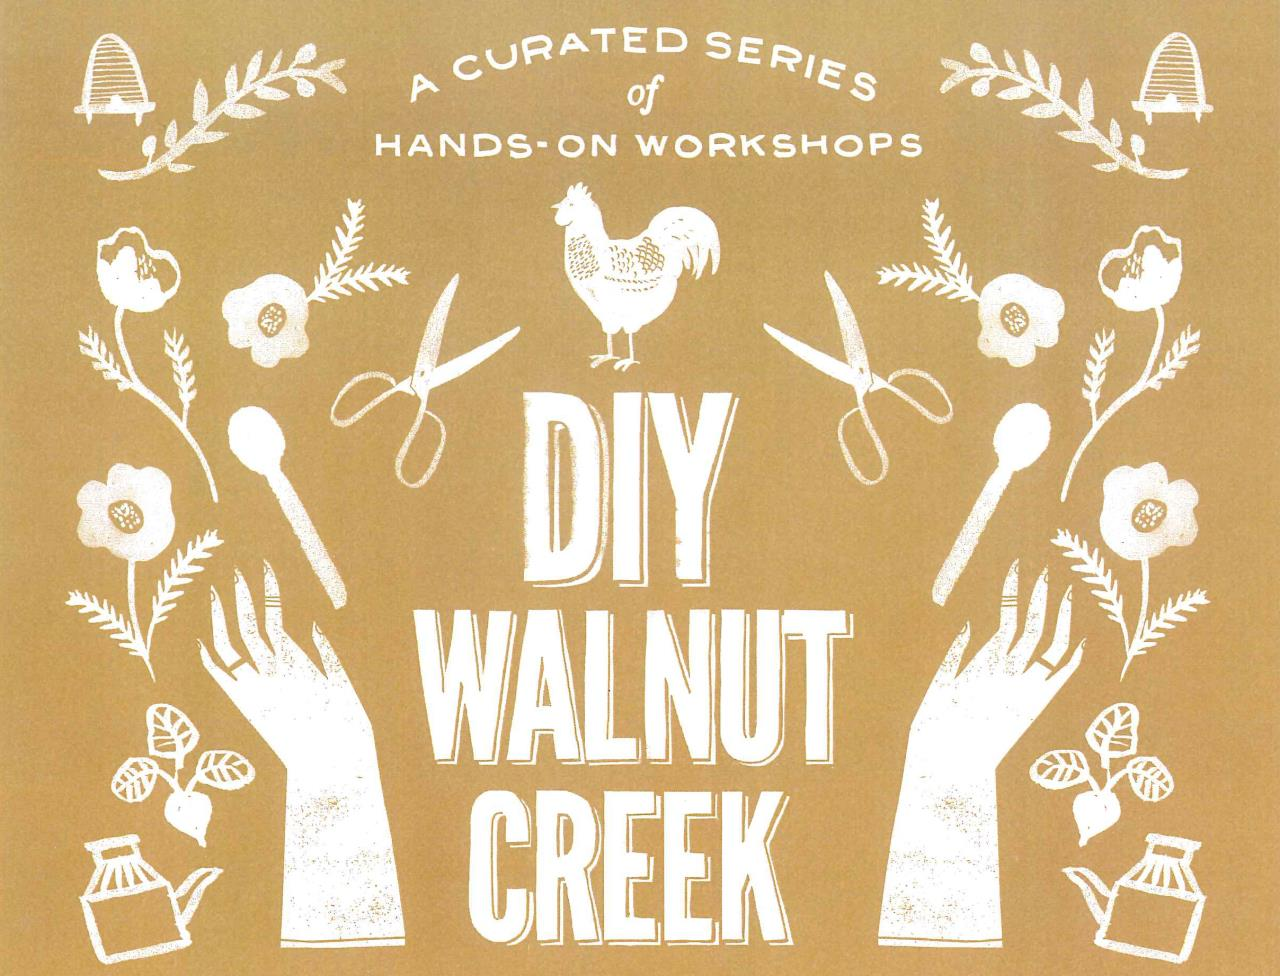 DIY Walnut Creek